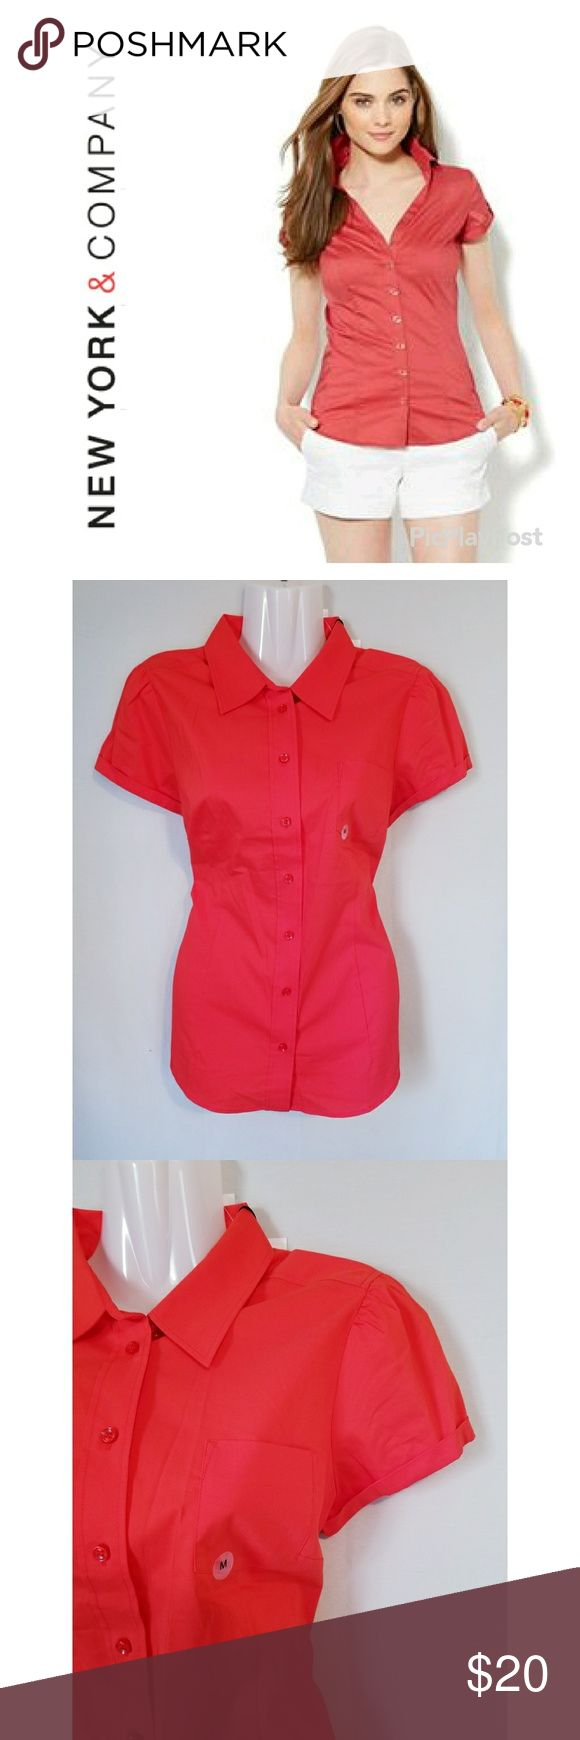 "NY&Co Pumpkin Spice Madison Shirt New York & Company brand orange ""The Madison"" short sleeve shirt. New with tags. Perfect for this fall season!   Approximate measurements (laying flat): Bust - 34"" Length - 27"" New York & Company Tops Button Down Shirts"